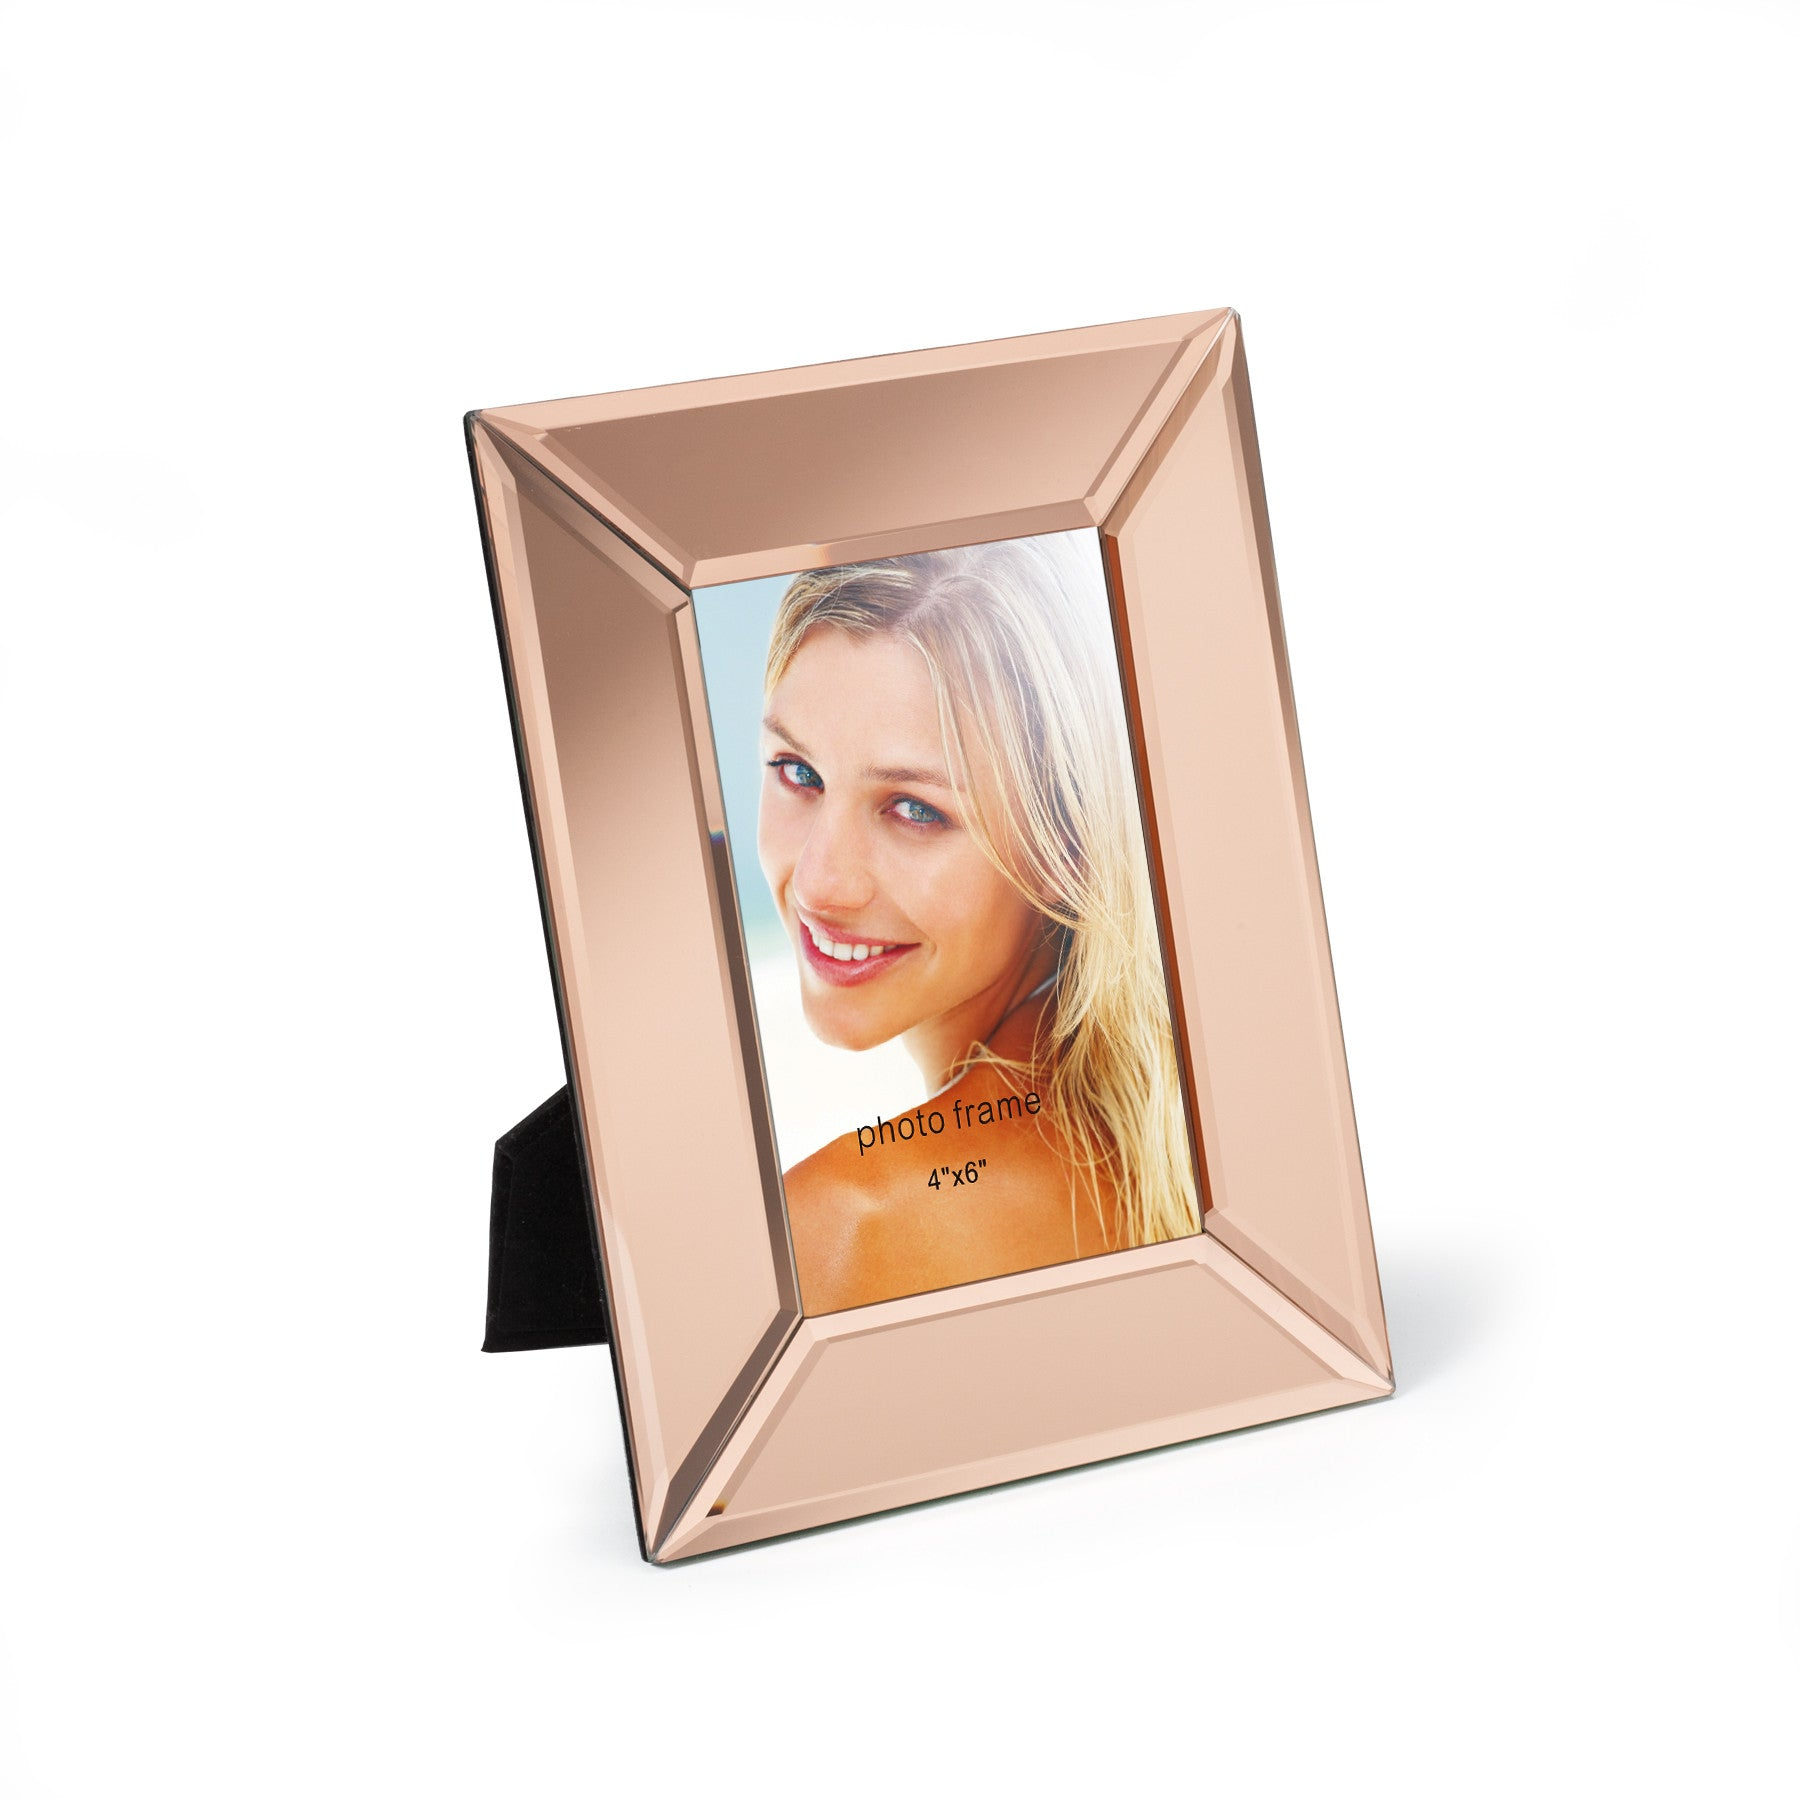 4 6 rose gold glass mirror photo frame